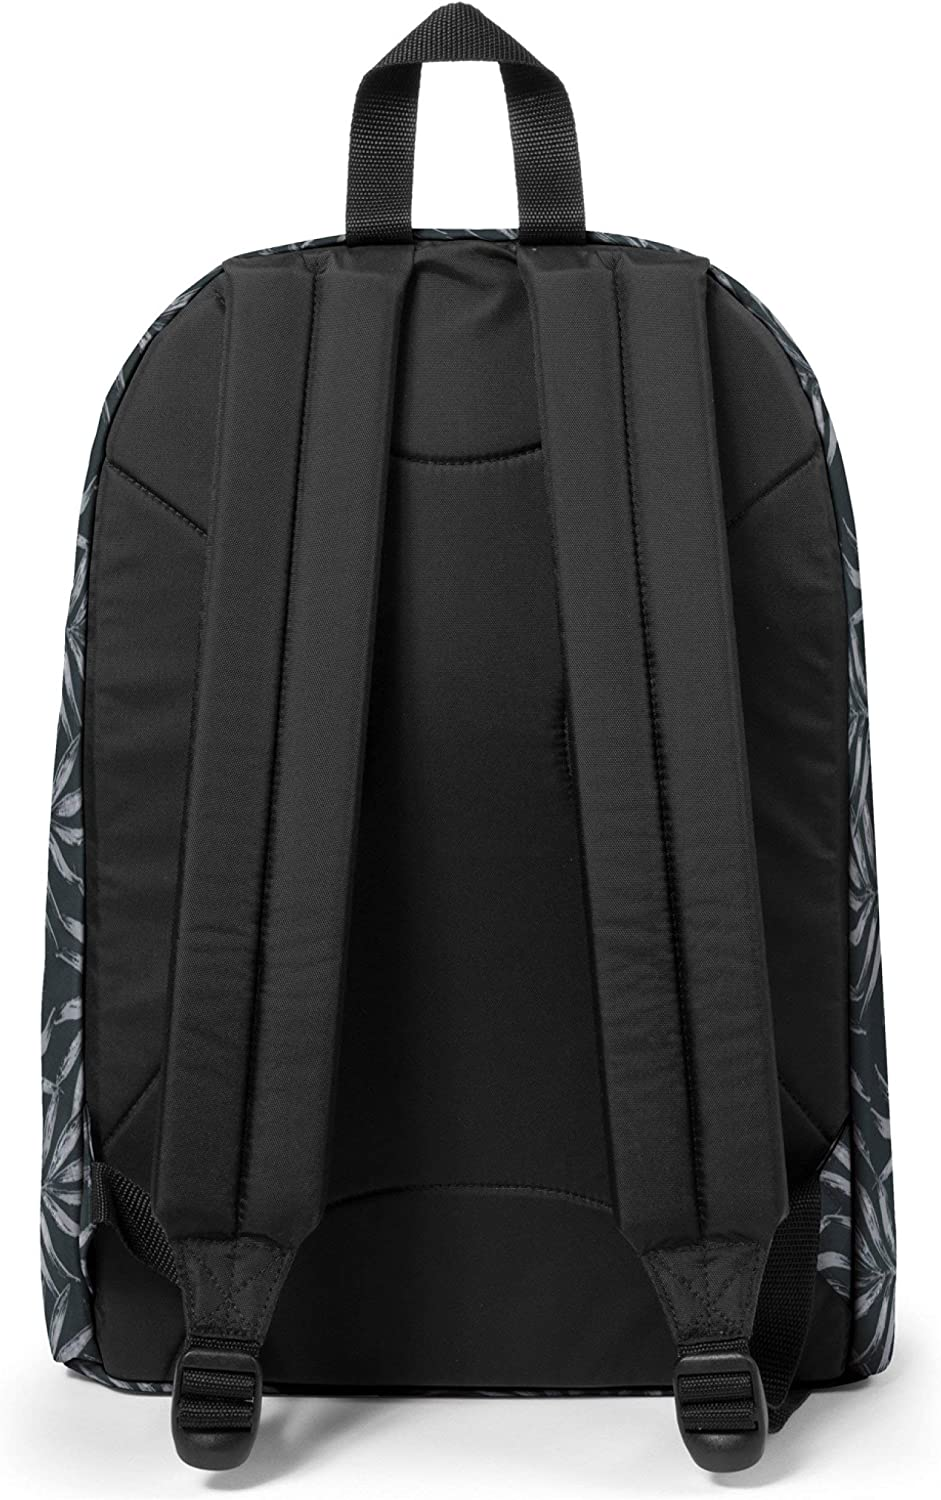 Eastpak Out Of Office Sac /à dos Orange 44cm 27 L Blakout Upcoming